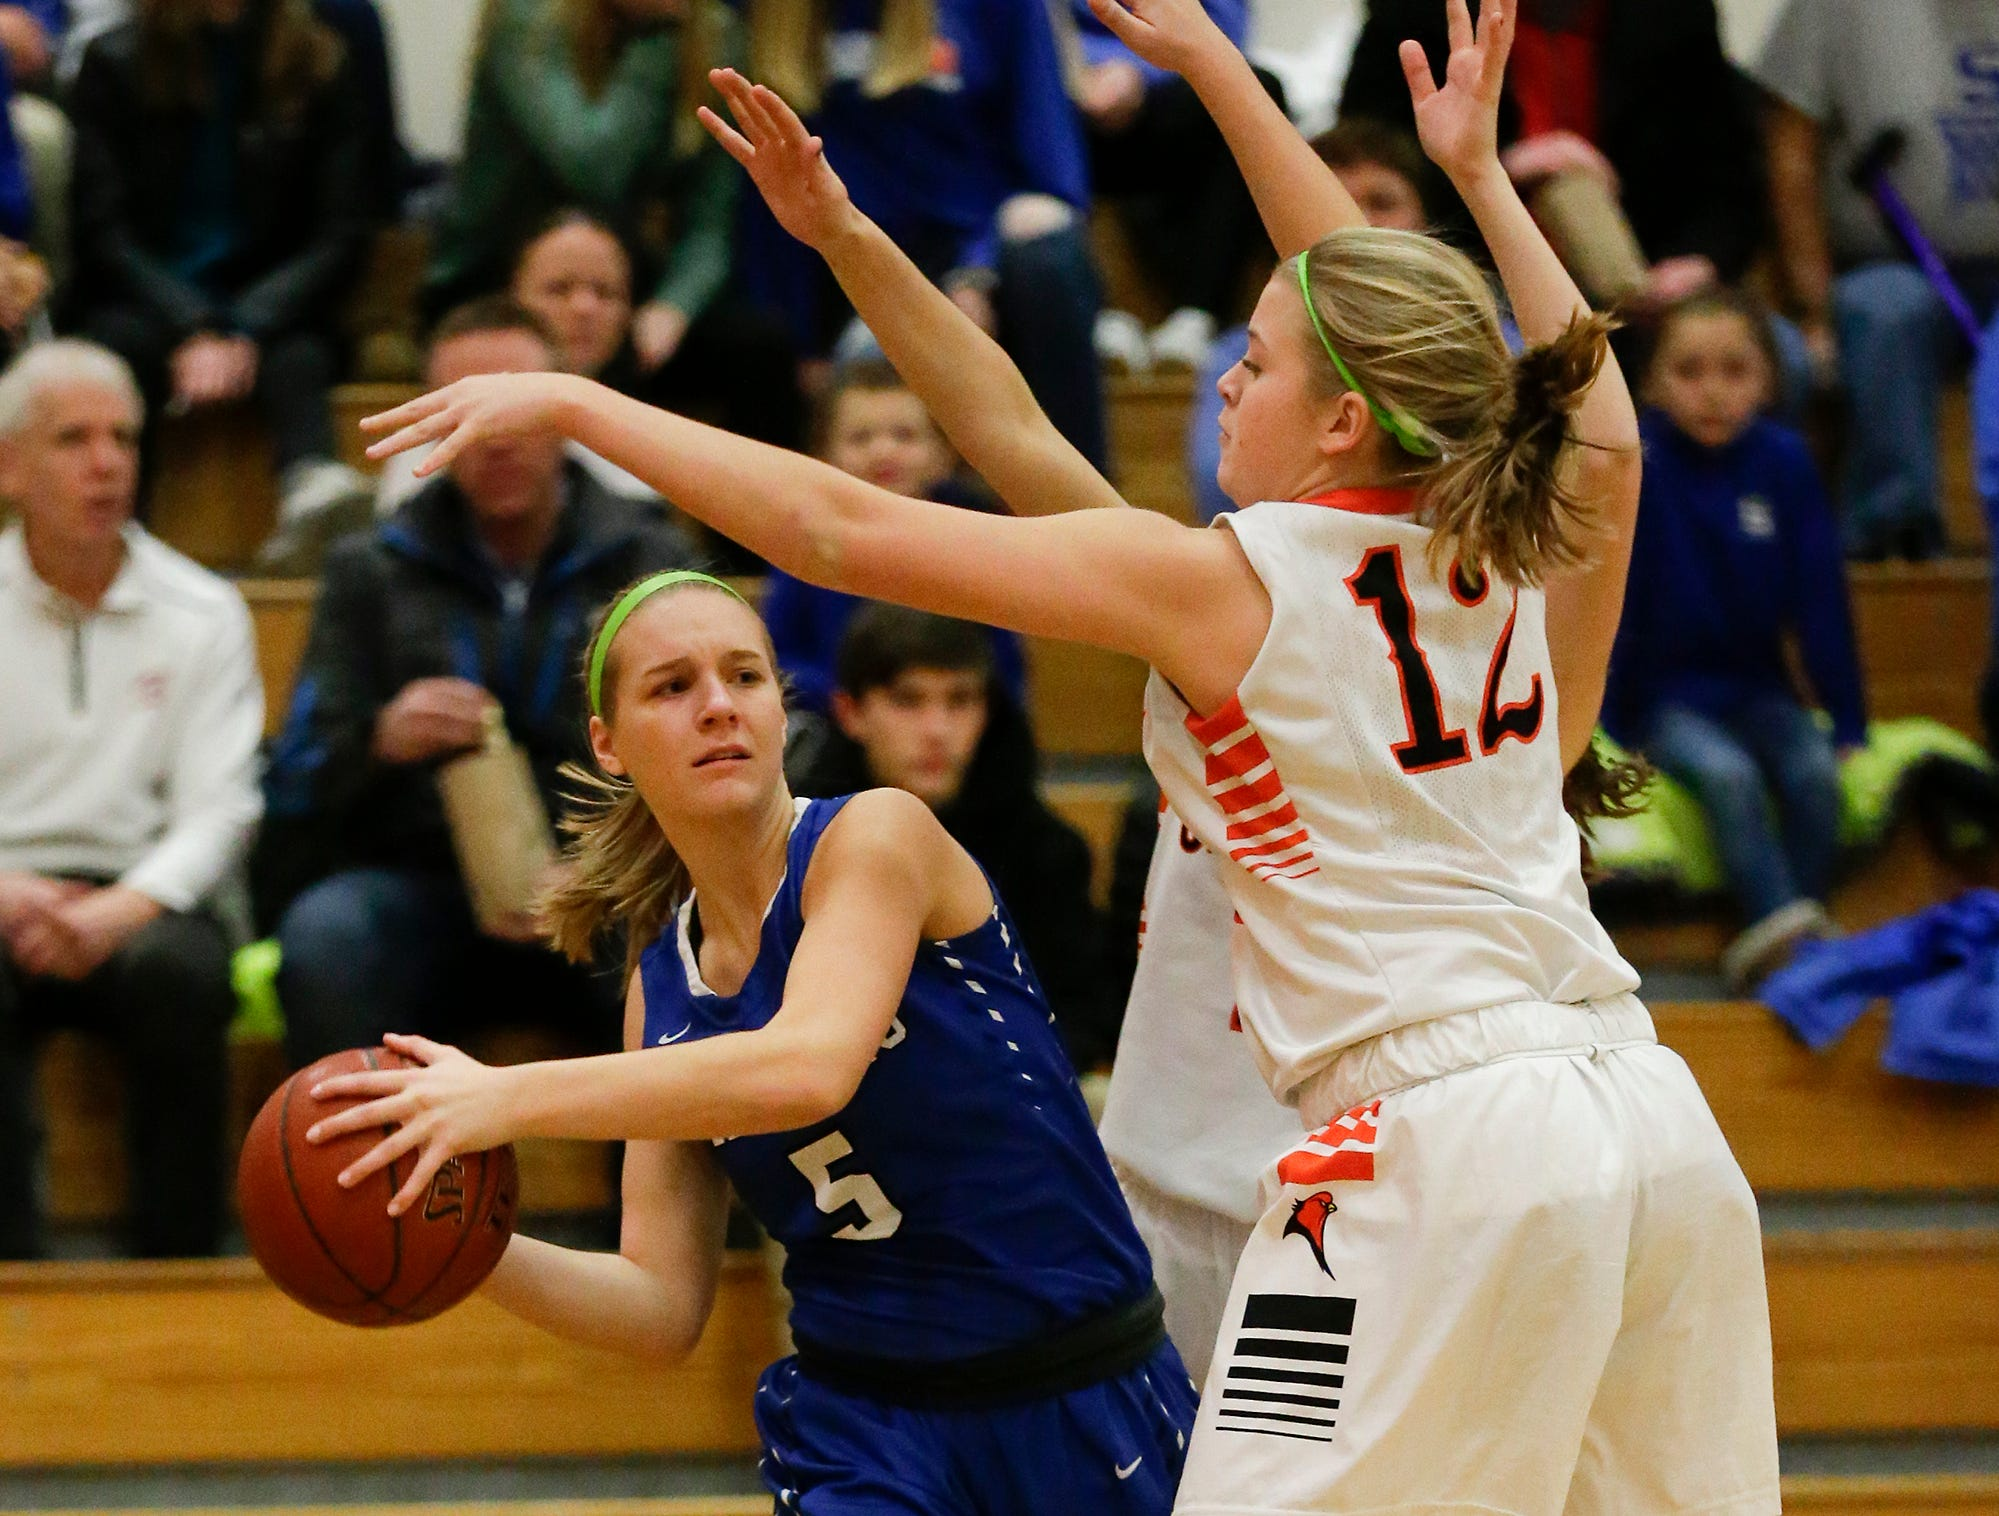 St. Mary's Springs Academy girls basketball's Gracie Rieder tries to pass the ball against North Fond du Lac High School during their game Friday, January 4, 2019 in North Fond du lac. Doug Raflik/USA TODAY NETWORK-Wisconsin